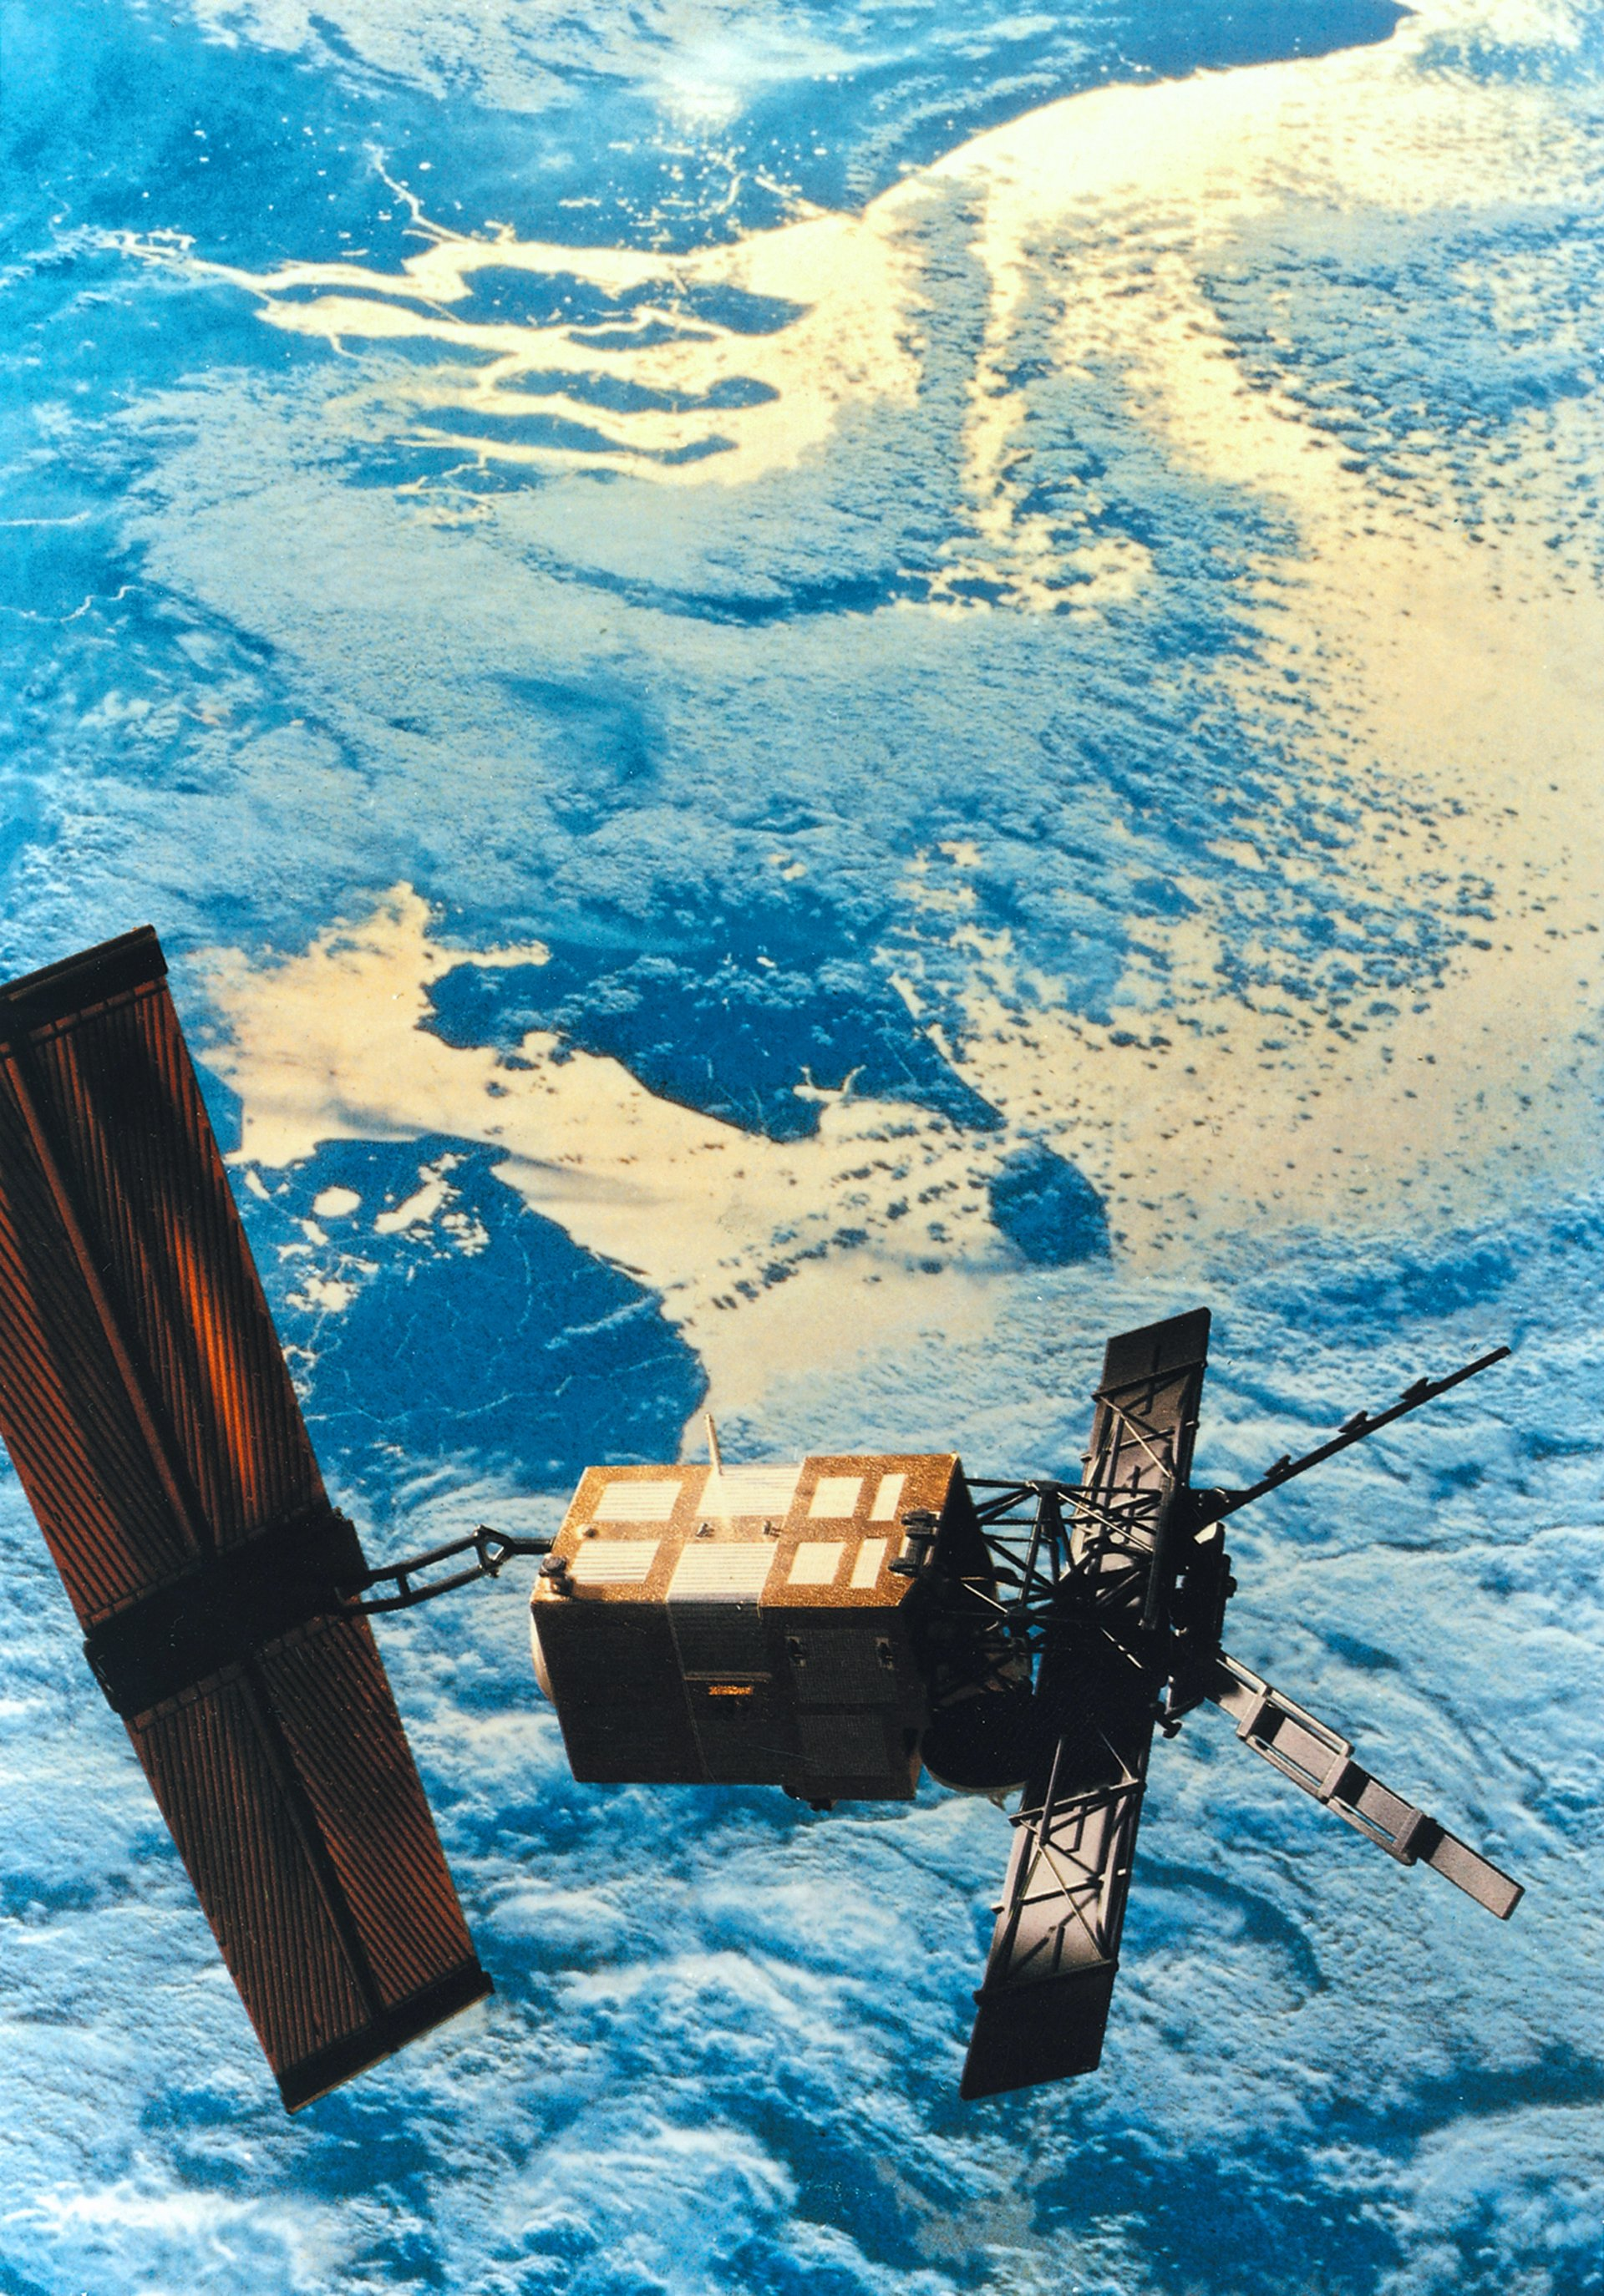 """Thirty years ago, on 17 July 1991, at exactly 03:46 (CEST), an Ariane 4 launch vehicle took off into space with the Earth observation satellite ERS-1 of the European Space Agency (ESA). The abbreviation stands for European Remote-Sensing Satellite and the """"1"""" marks it as the first of its kind. ERS-1 is the ancestor of all modern European Earth observation satellites. The ERS-1 mission marks both the beginning of ESA's modern Earth observation and the start of a long and successful remote sensing history for Airbus' space division."""